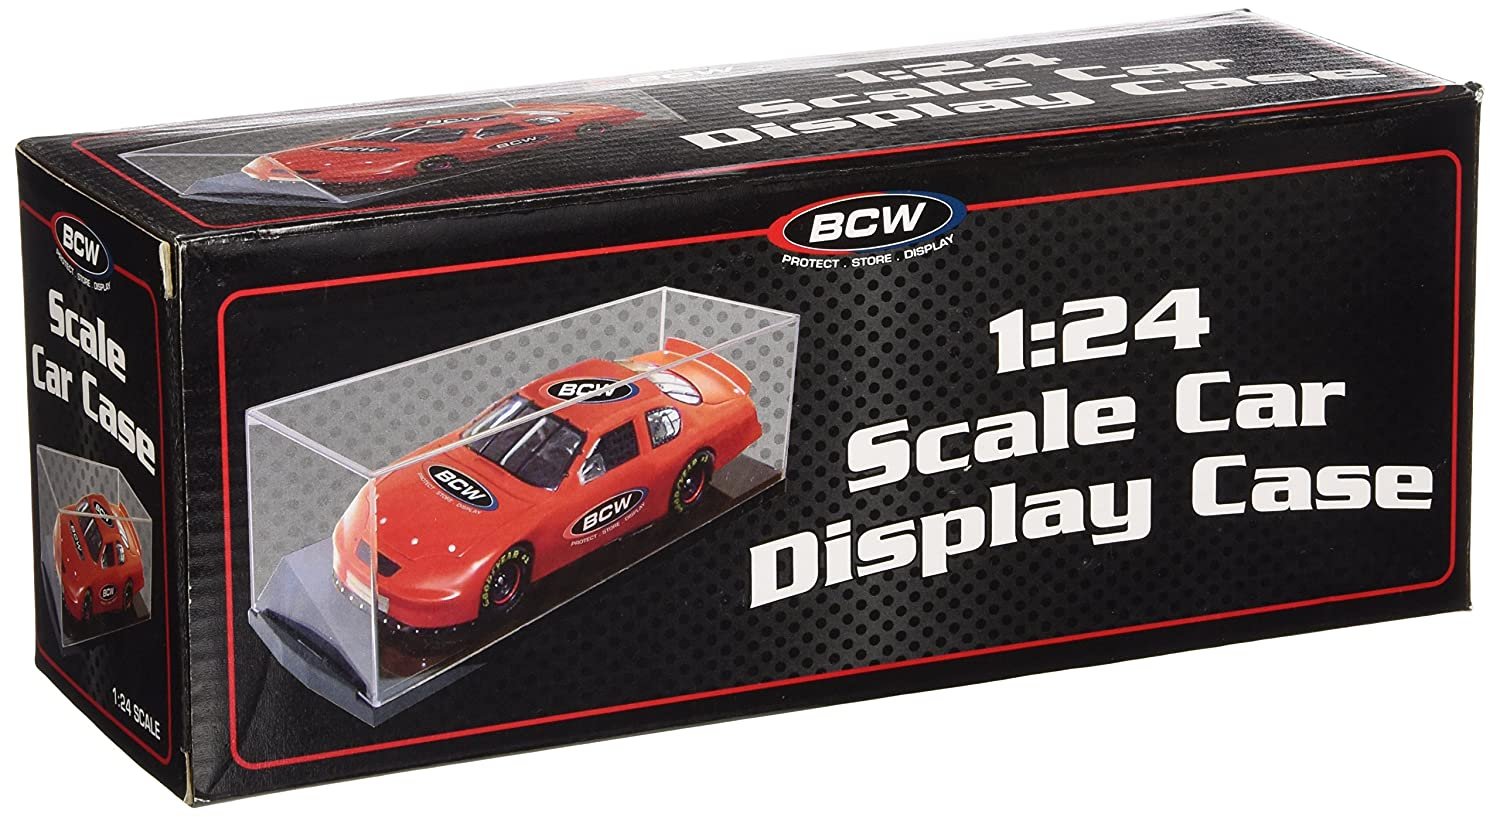 Amazon.com : BCW 1:24 Scale Car Display Case   Die Cast NASCAR, Racing    Sports Memorabilia Display Case   Collecting Supplies : Sports U0026 Outdoors